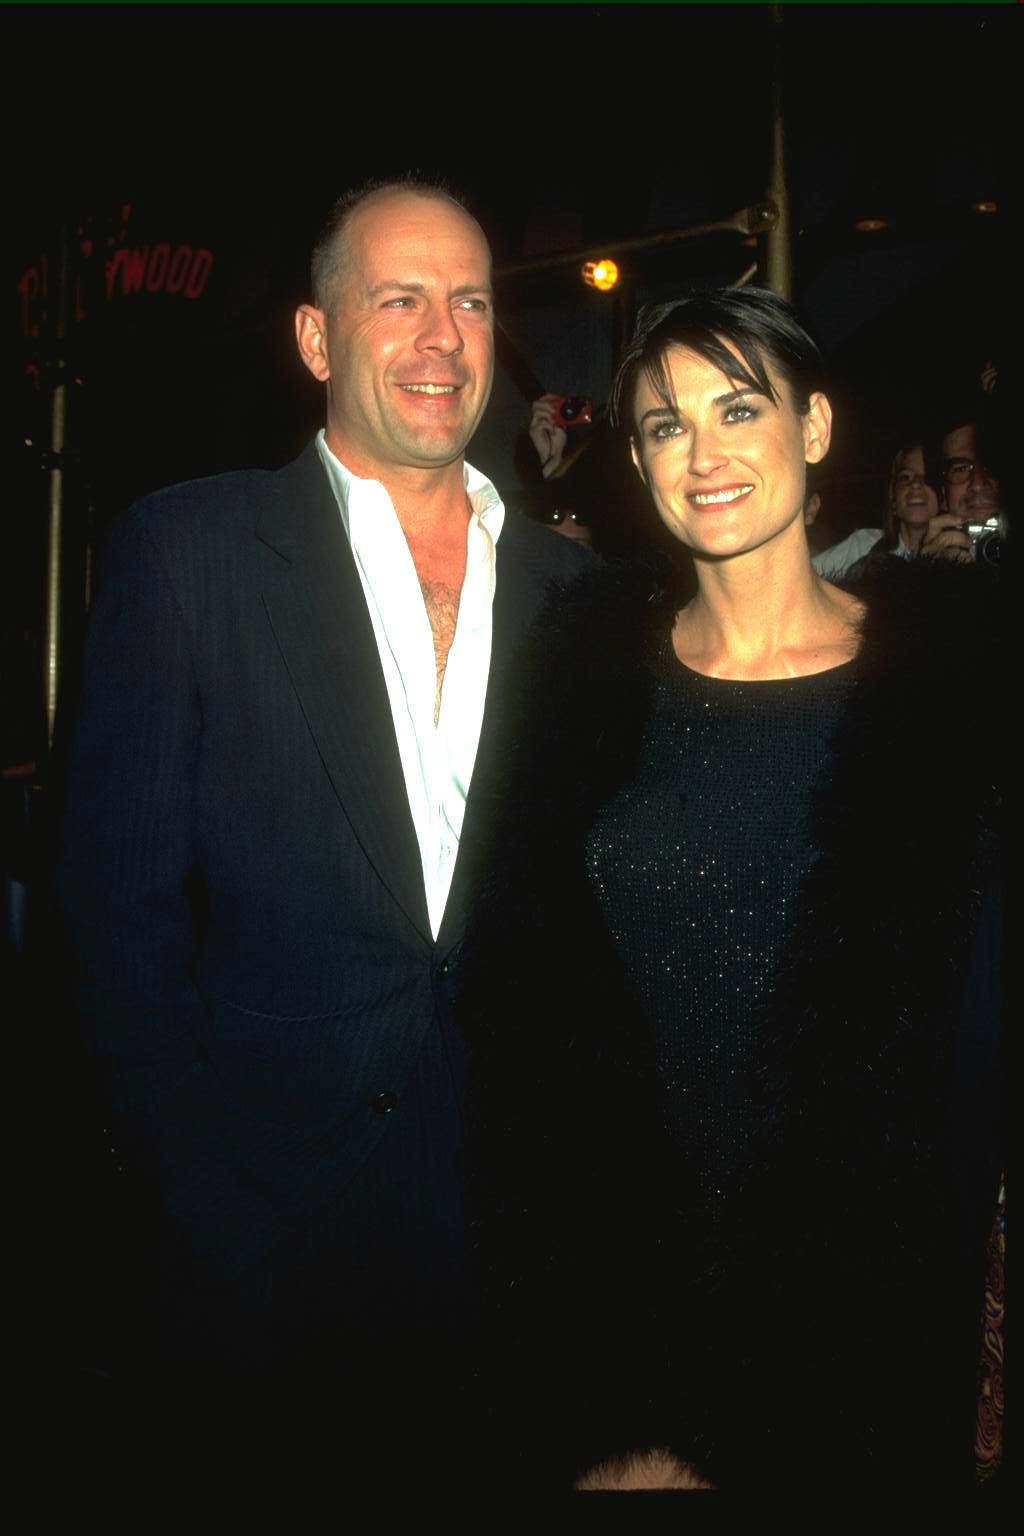 366722 03: UNDATED FILE PHOTO: Actor Bruce Willis and actress Demi Moore. On October 25, 2000, it has been reported that the couple, who separated in 1998 filed for a divorce at a courthouse near Sun Valley, Idaho last week. (Photo by Diane Freed/Newsmakers)